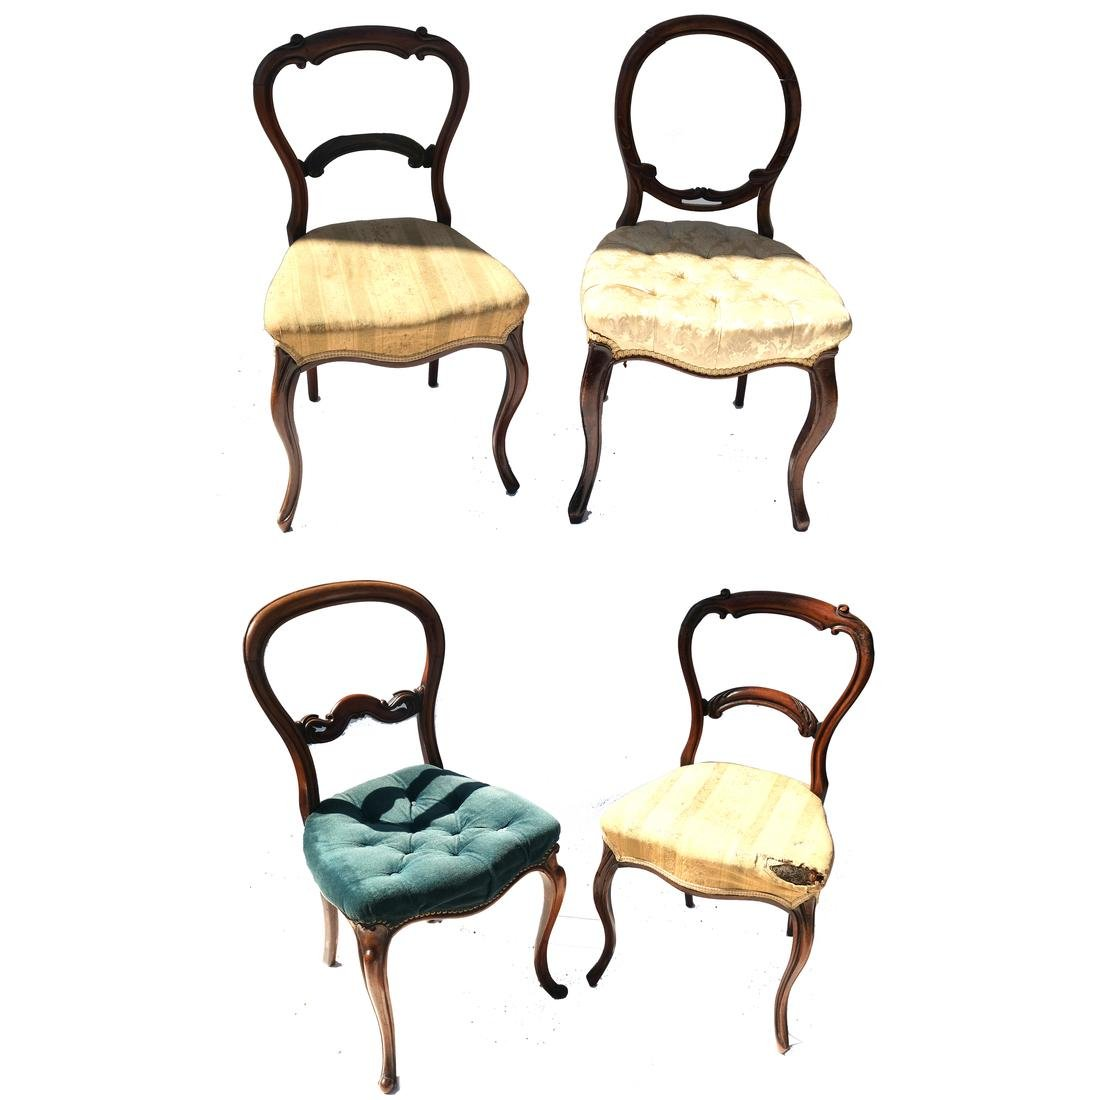 Antique English Victorian Balloon-Back Chairs